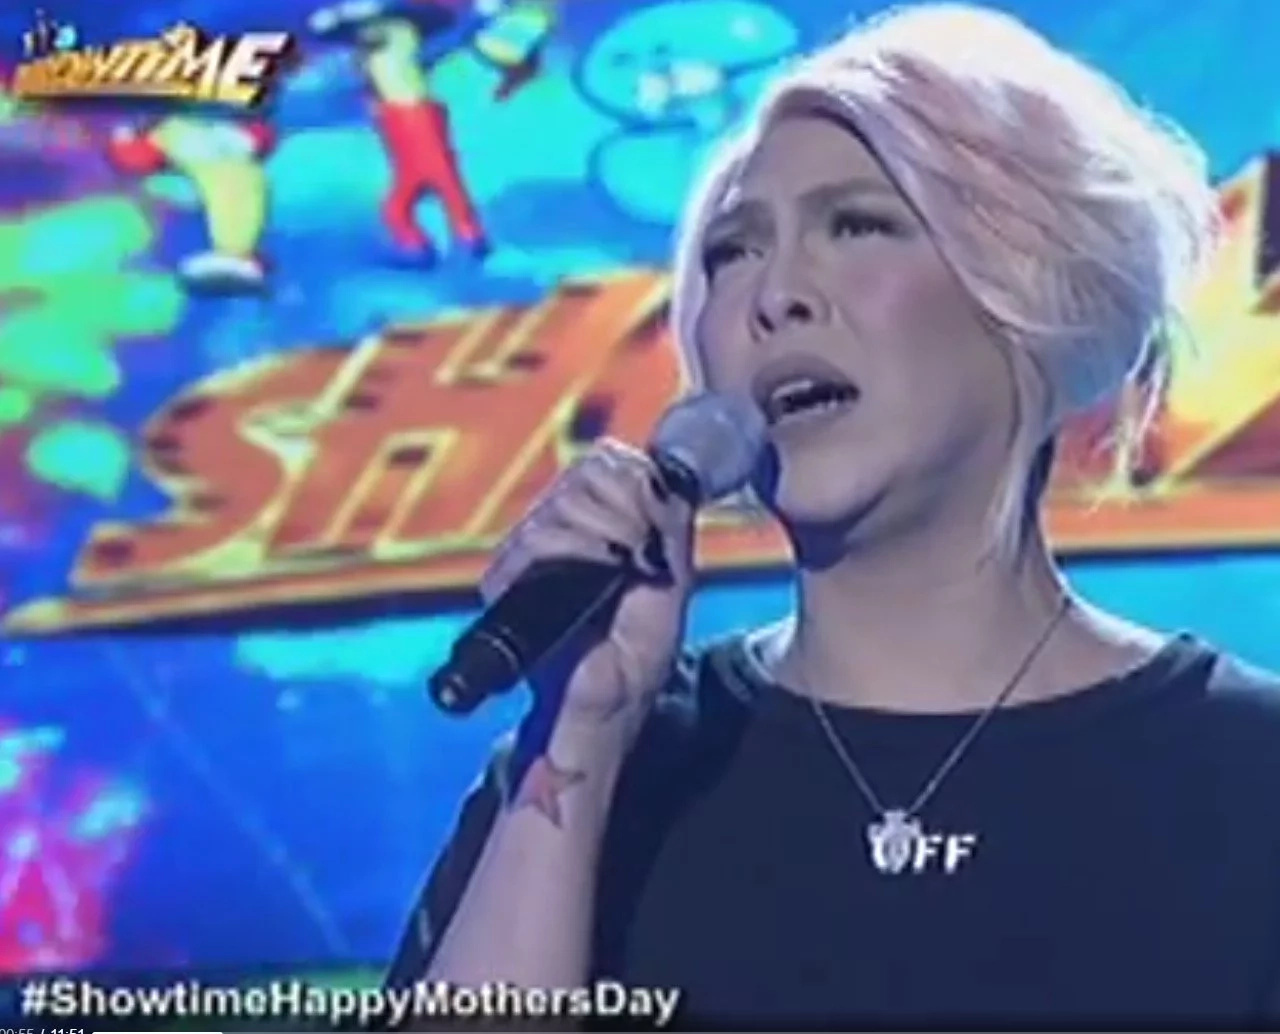 Vice Ganda pays Tribute to all Mothers on Mother's Day. Watch this Spoken Word Poetry That Made Everyone Emotional